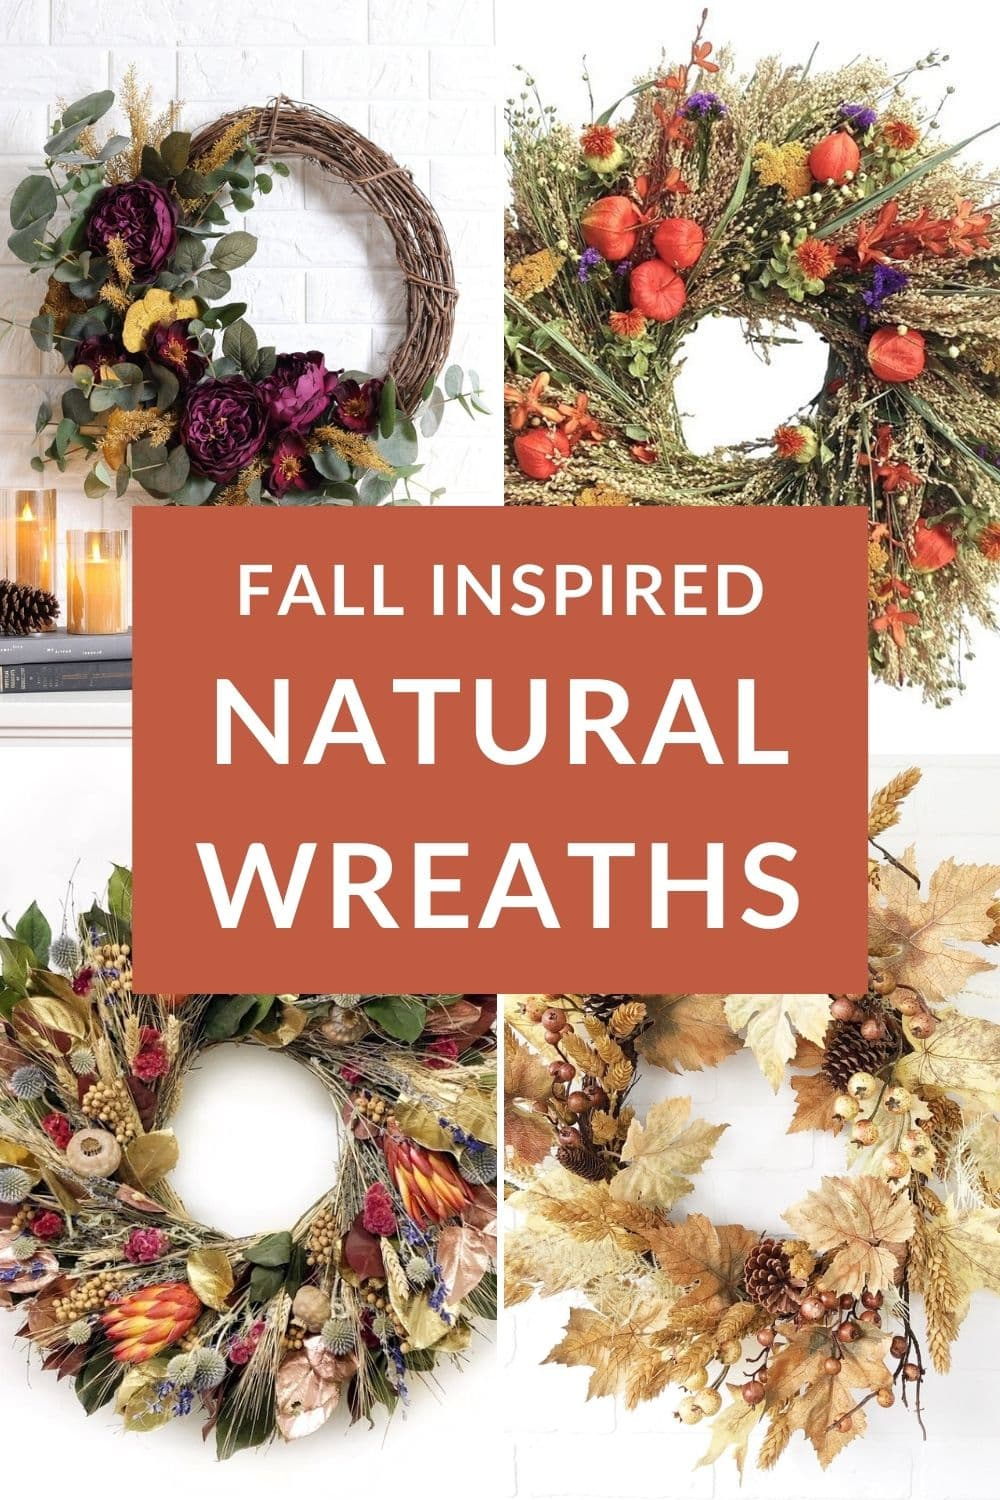 a collage of 4 beautiful fall wreaths the text reads fall inspired natural wreaths